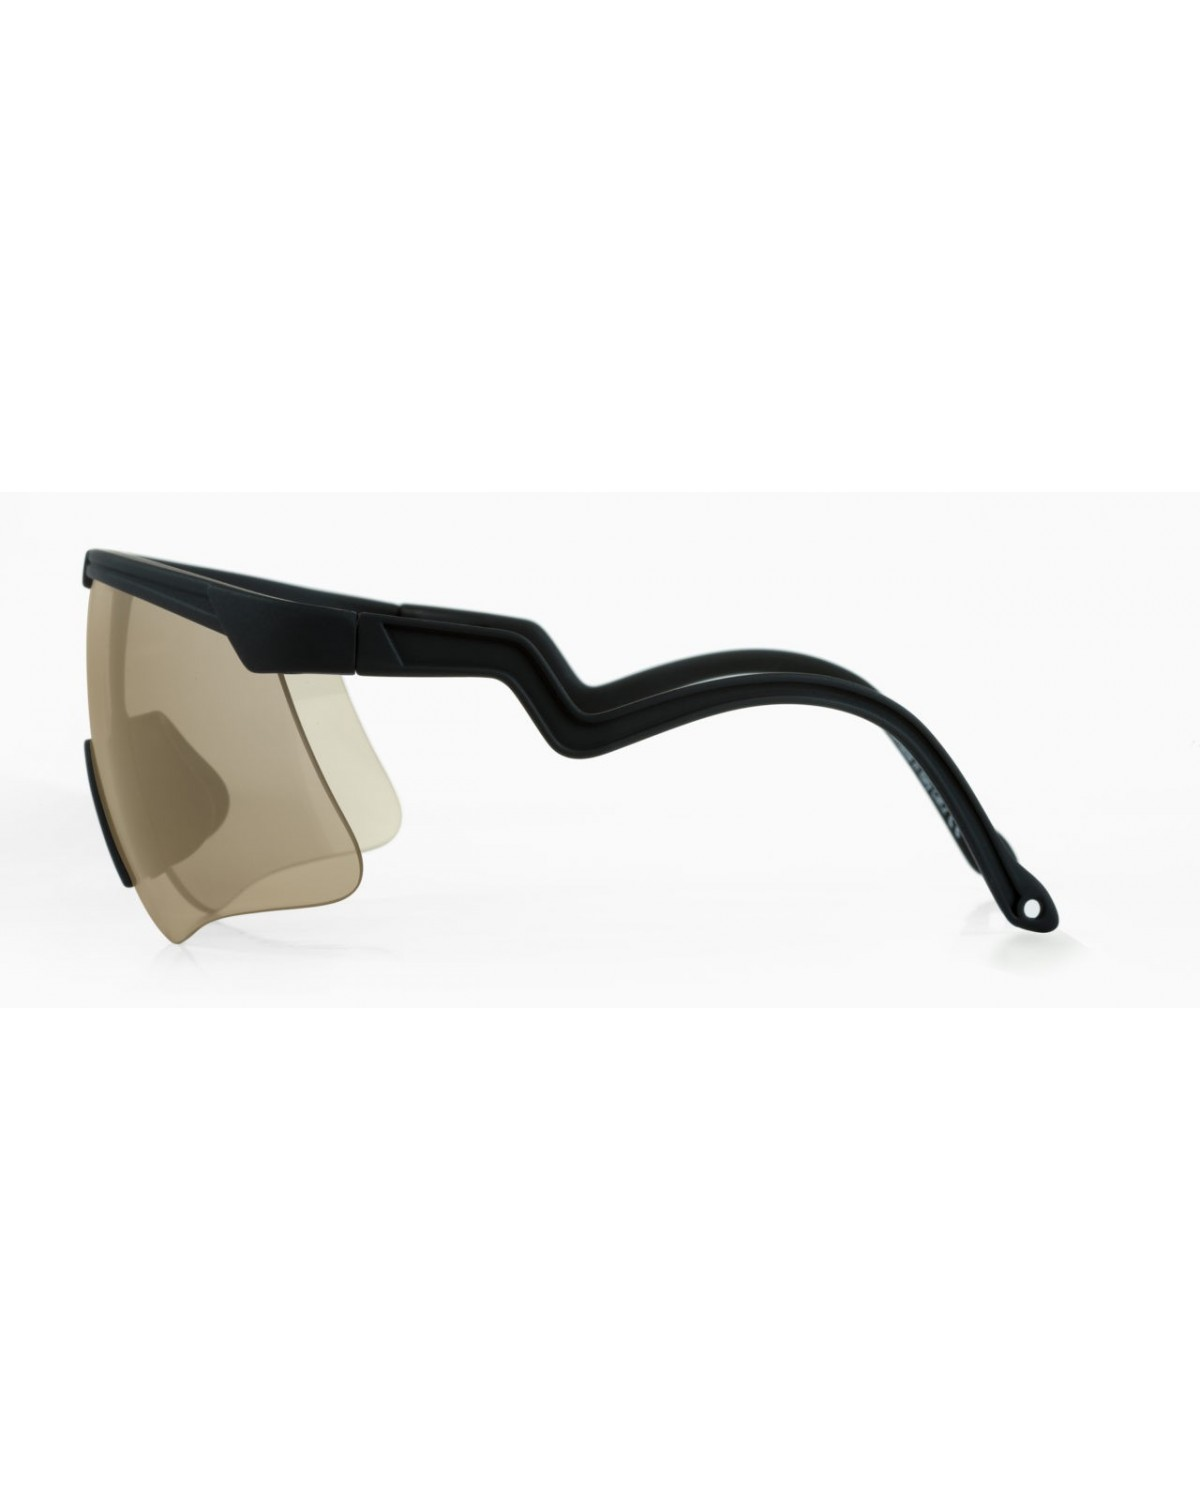 Alba Optics Delta Black Mirror Gold Retro Radbrille